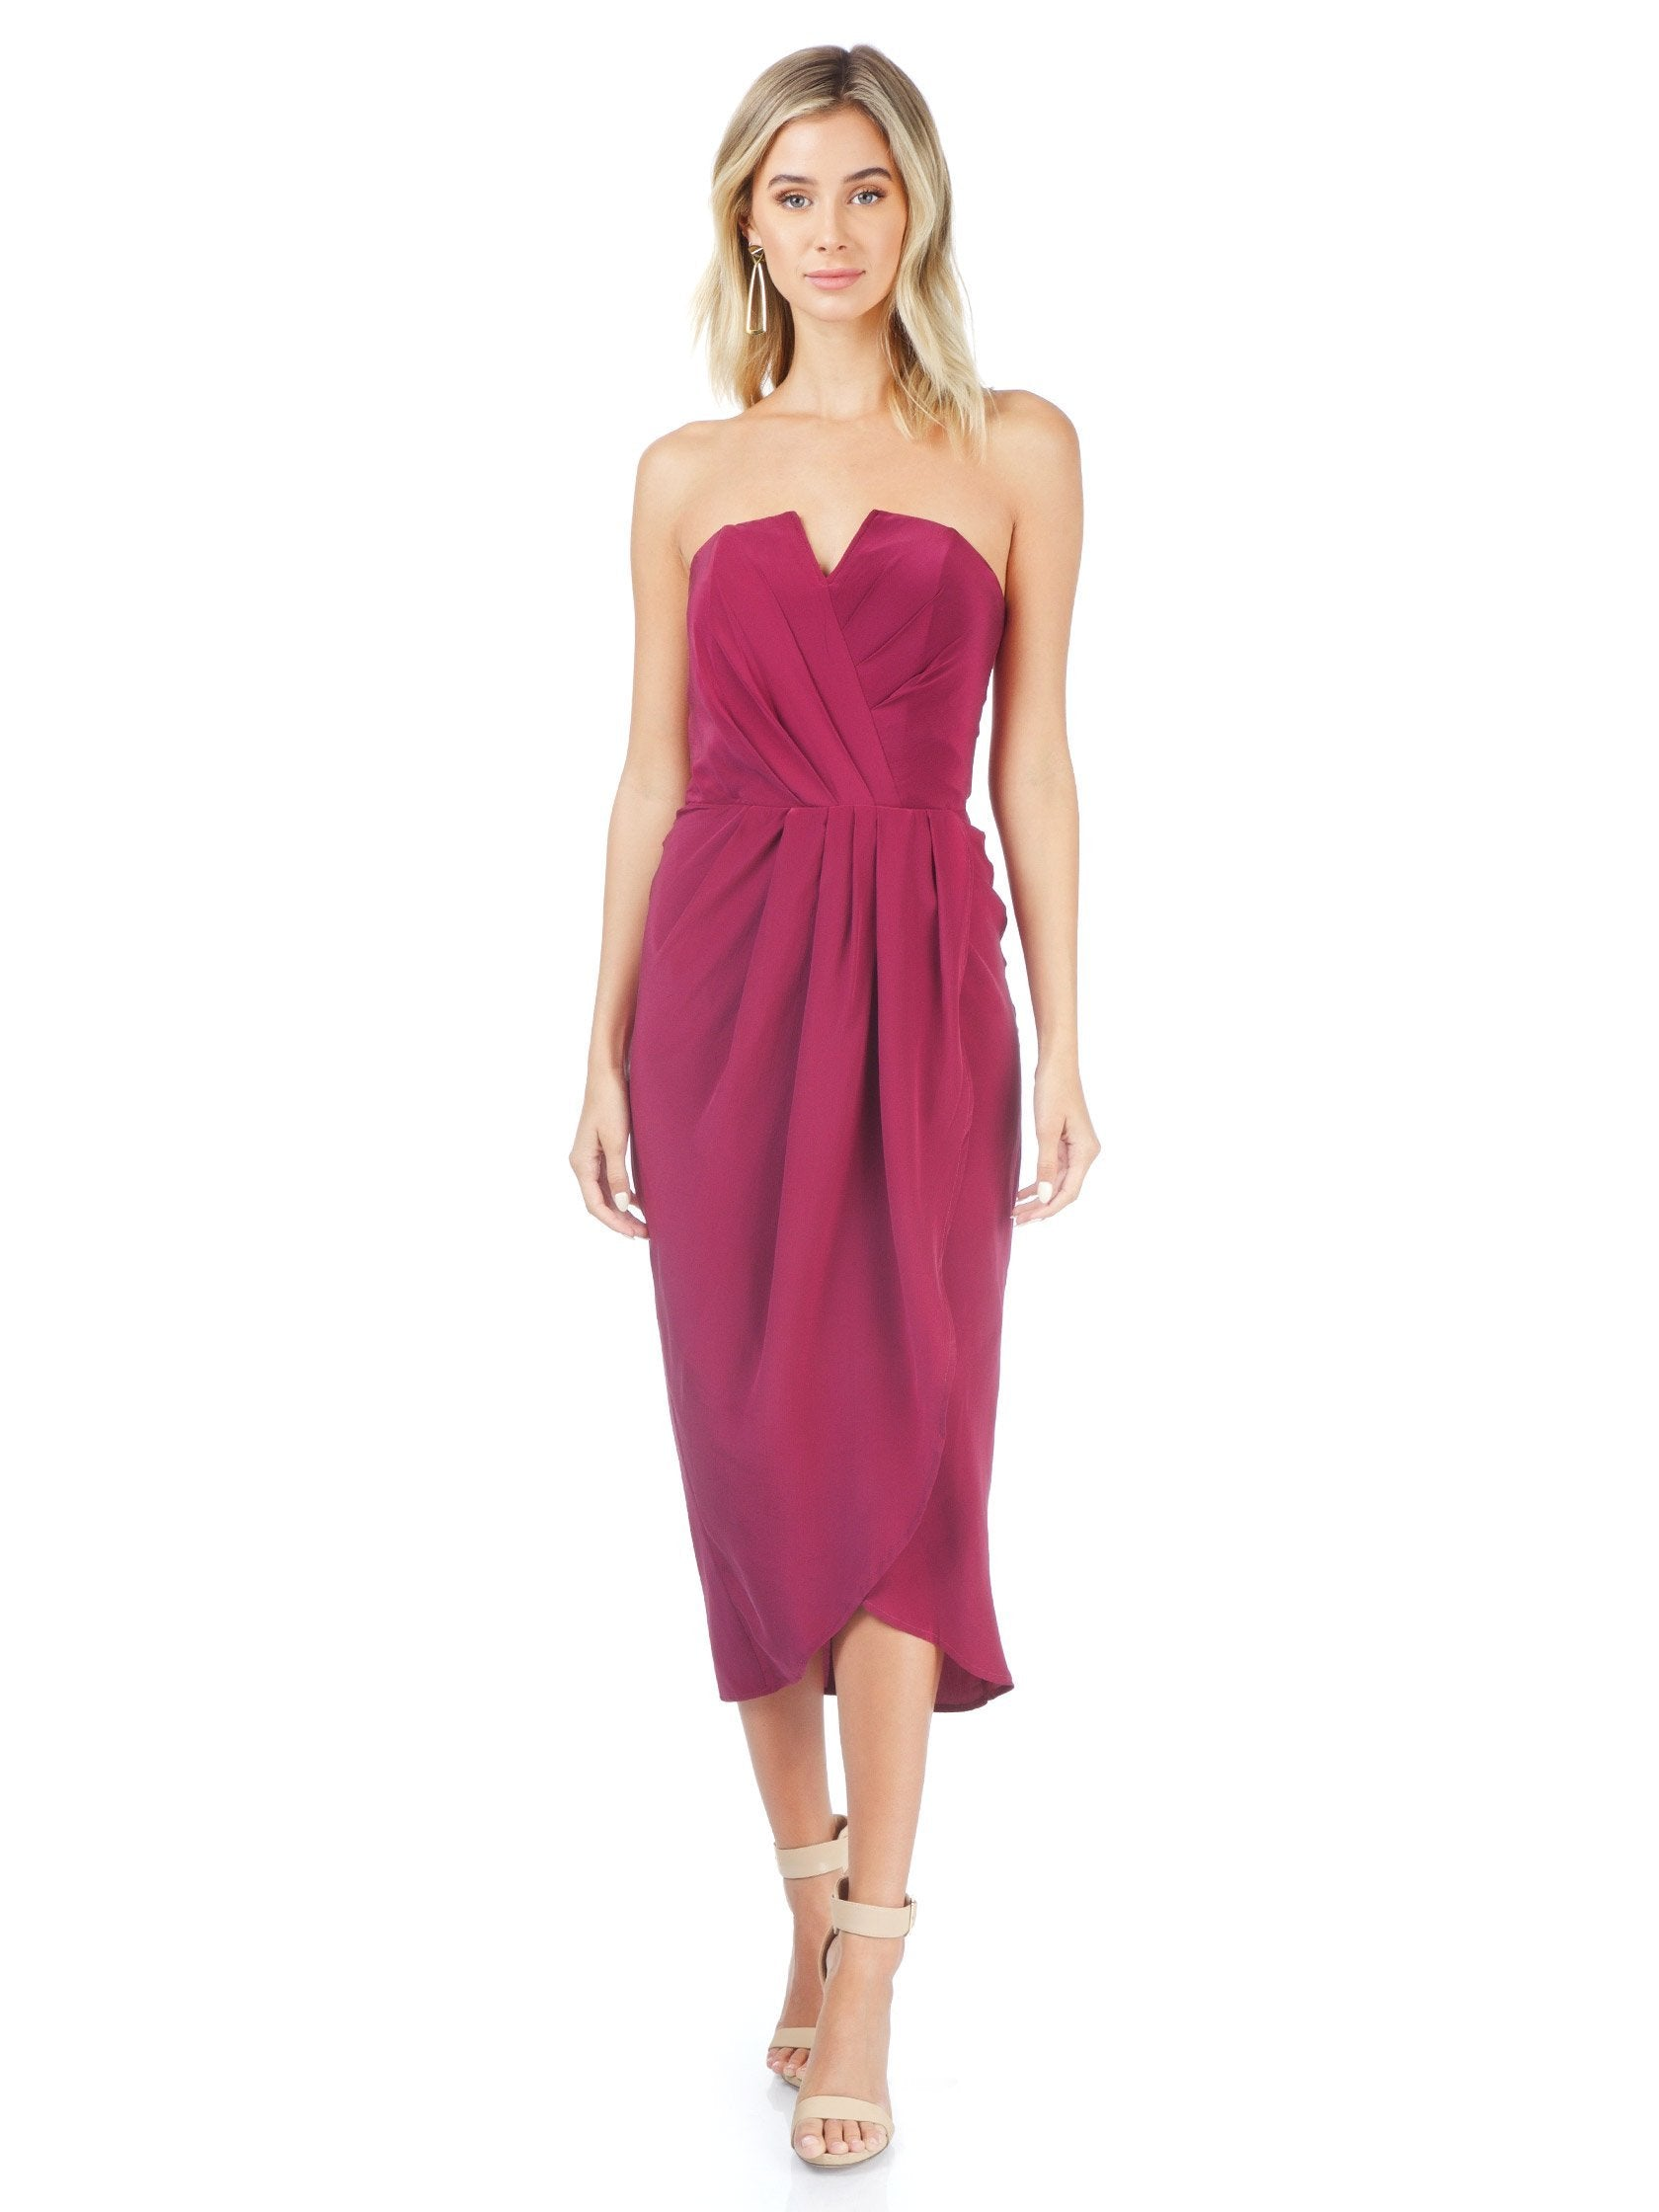 Girl outfit in a dress rental from YUMI KIM called Glamour Night Midi Dress